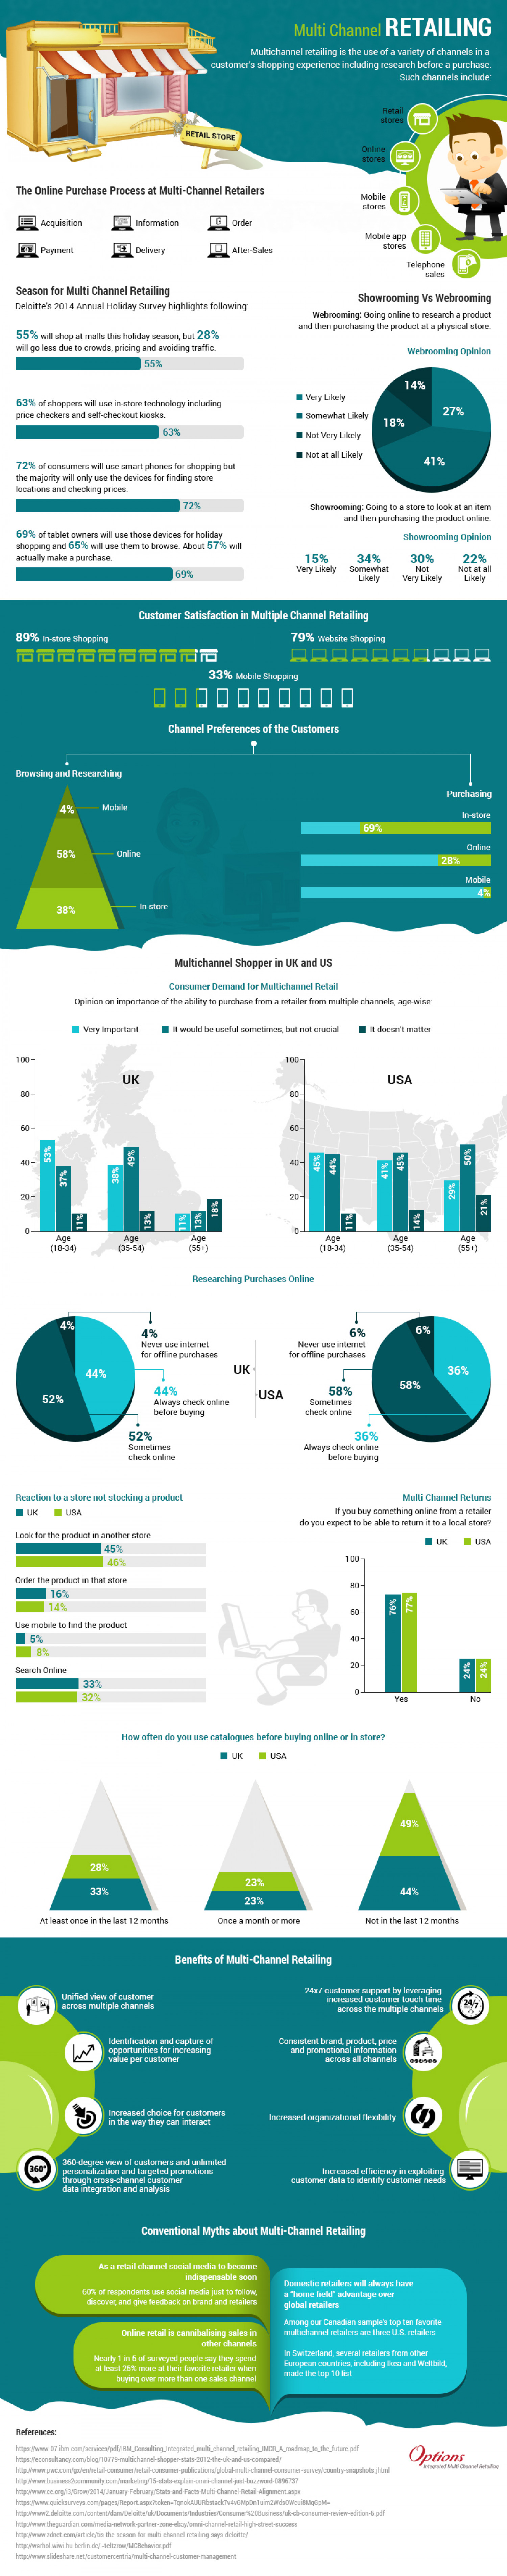 Multichannel Retailing Infographic